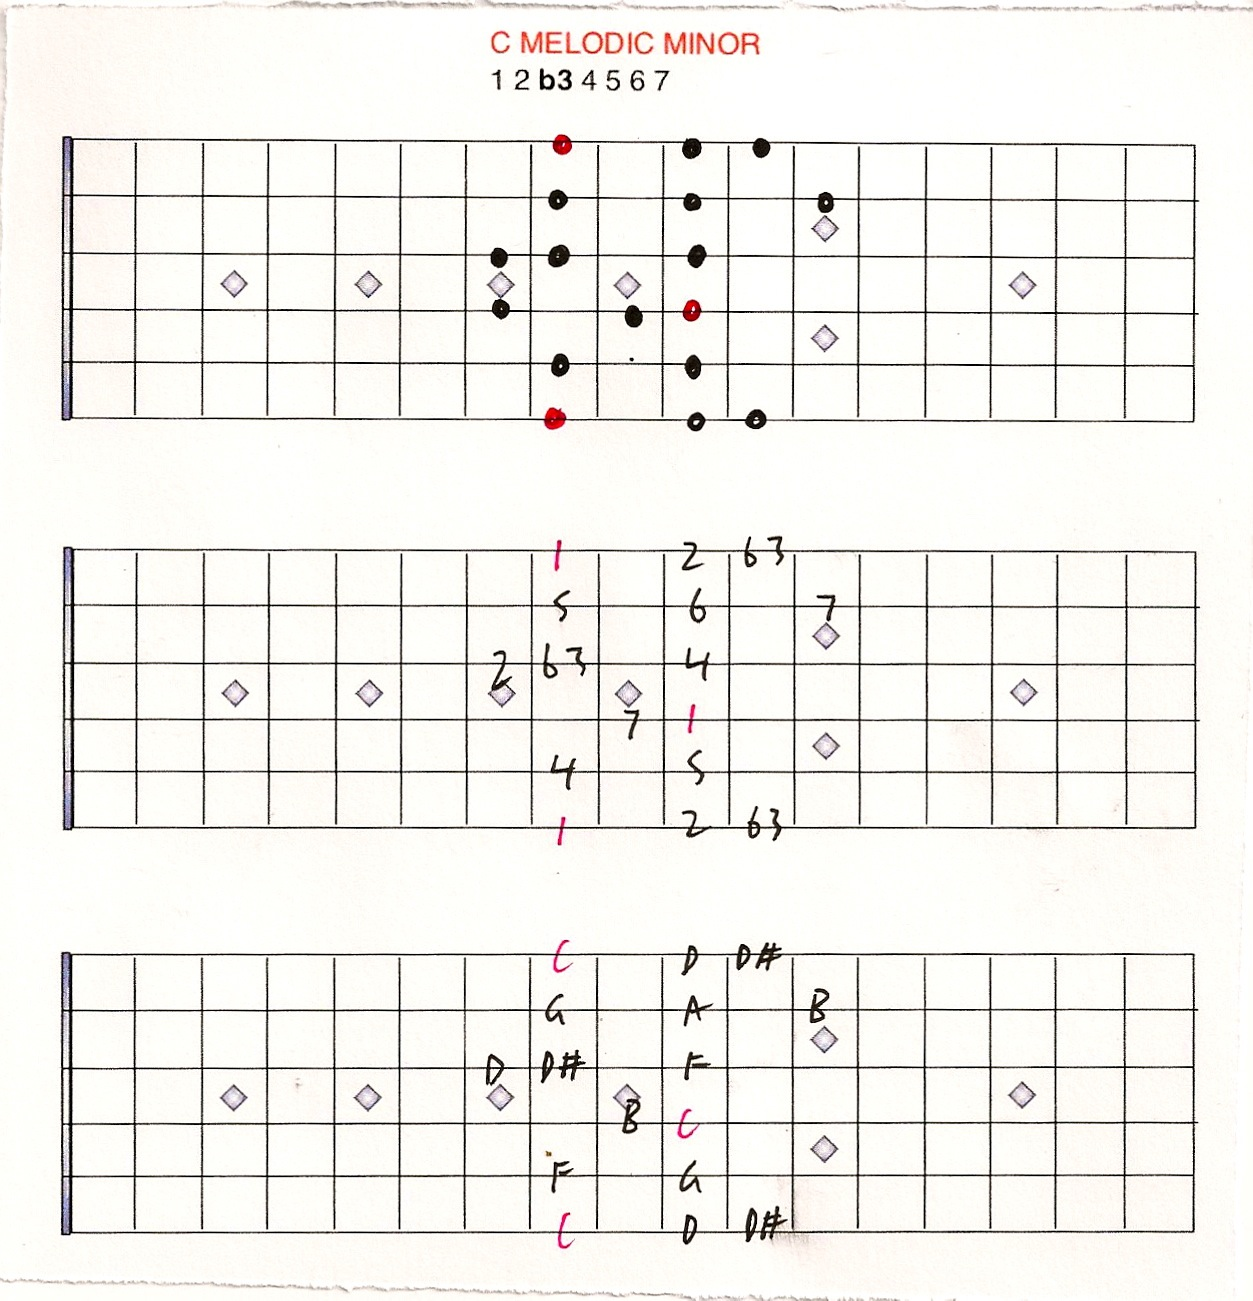 Natural harmonic and melodic minor scales end of the game melodic minor scale chart hexwebz Choice Image